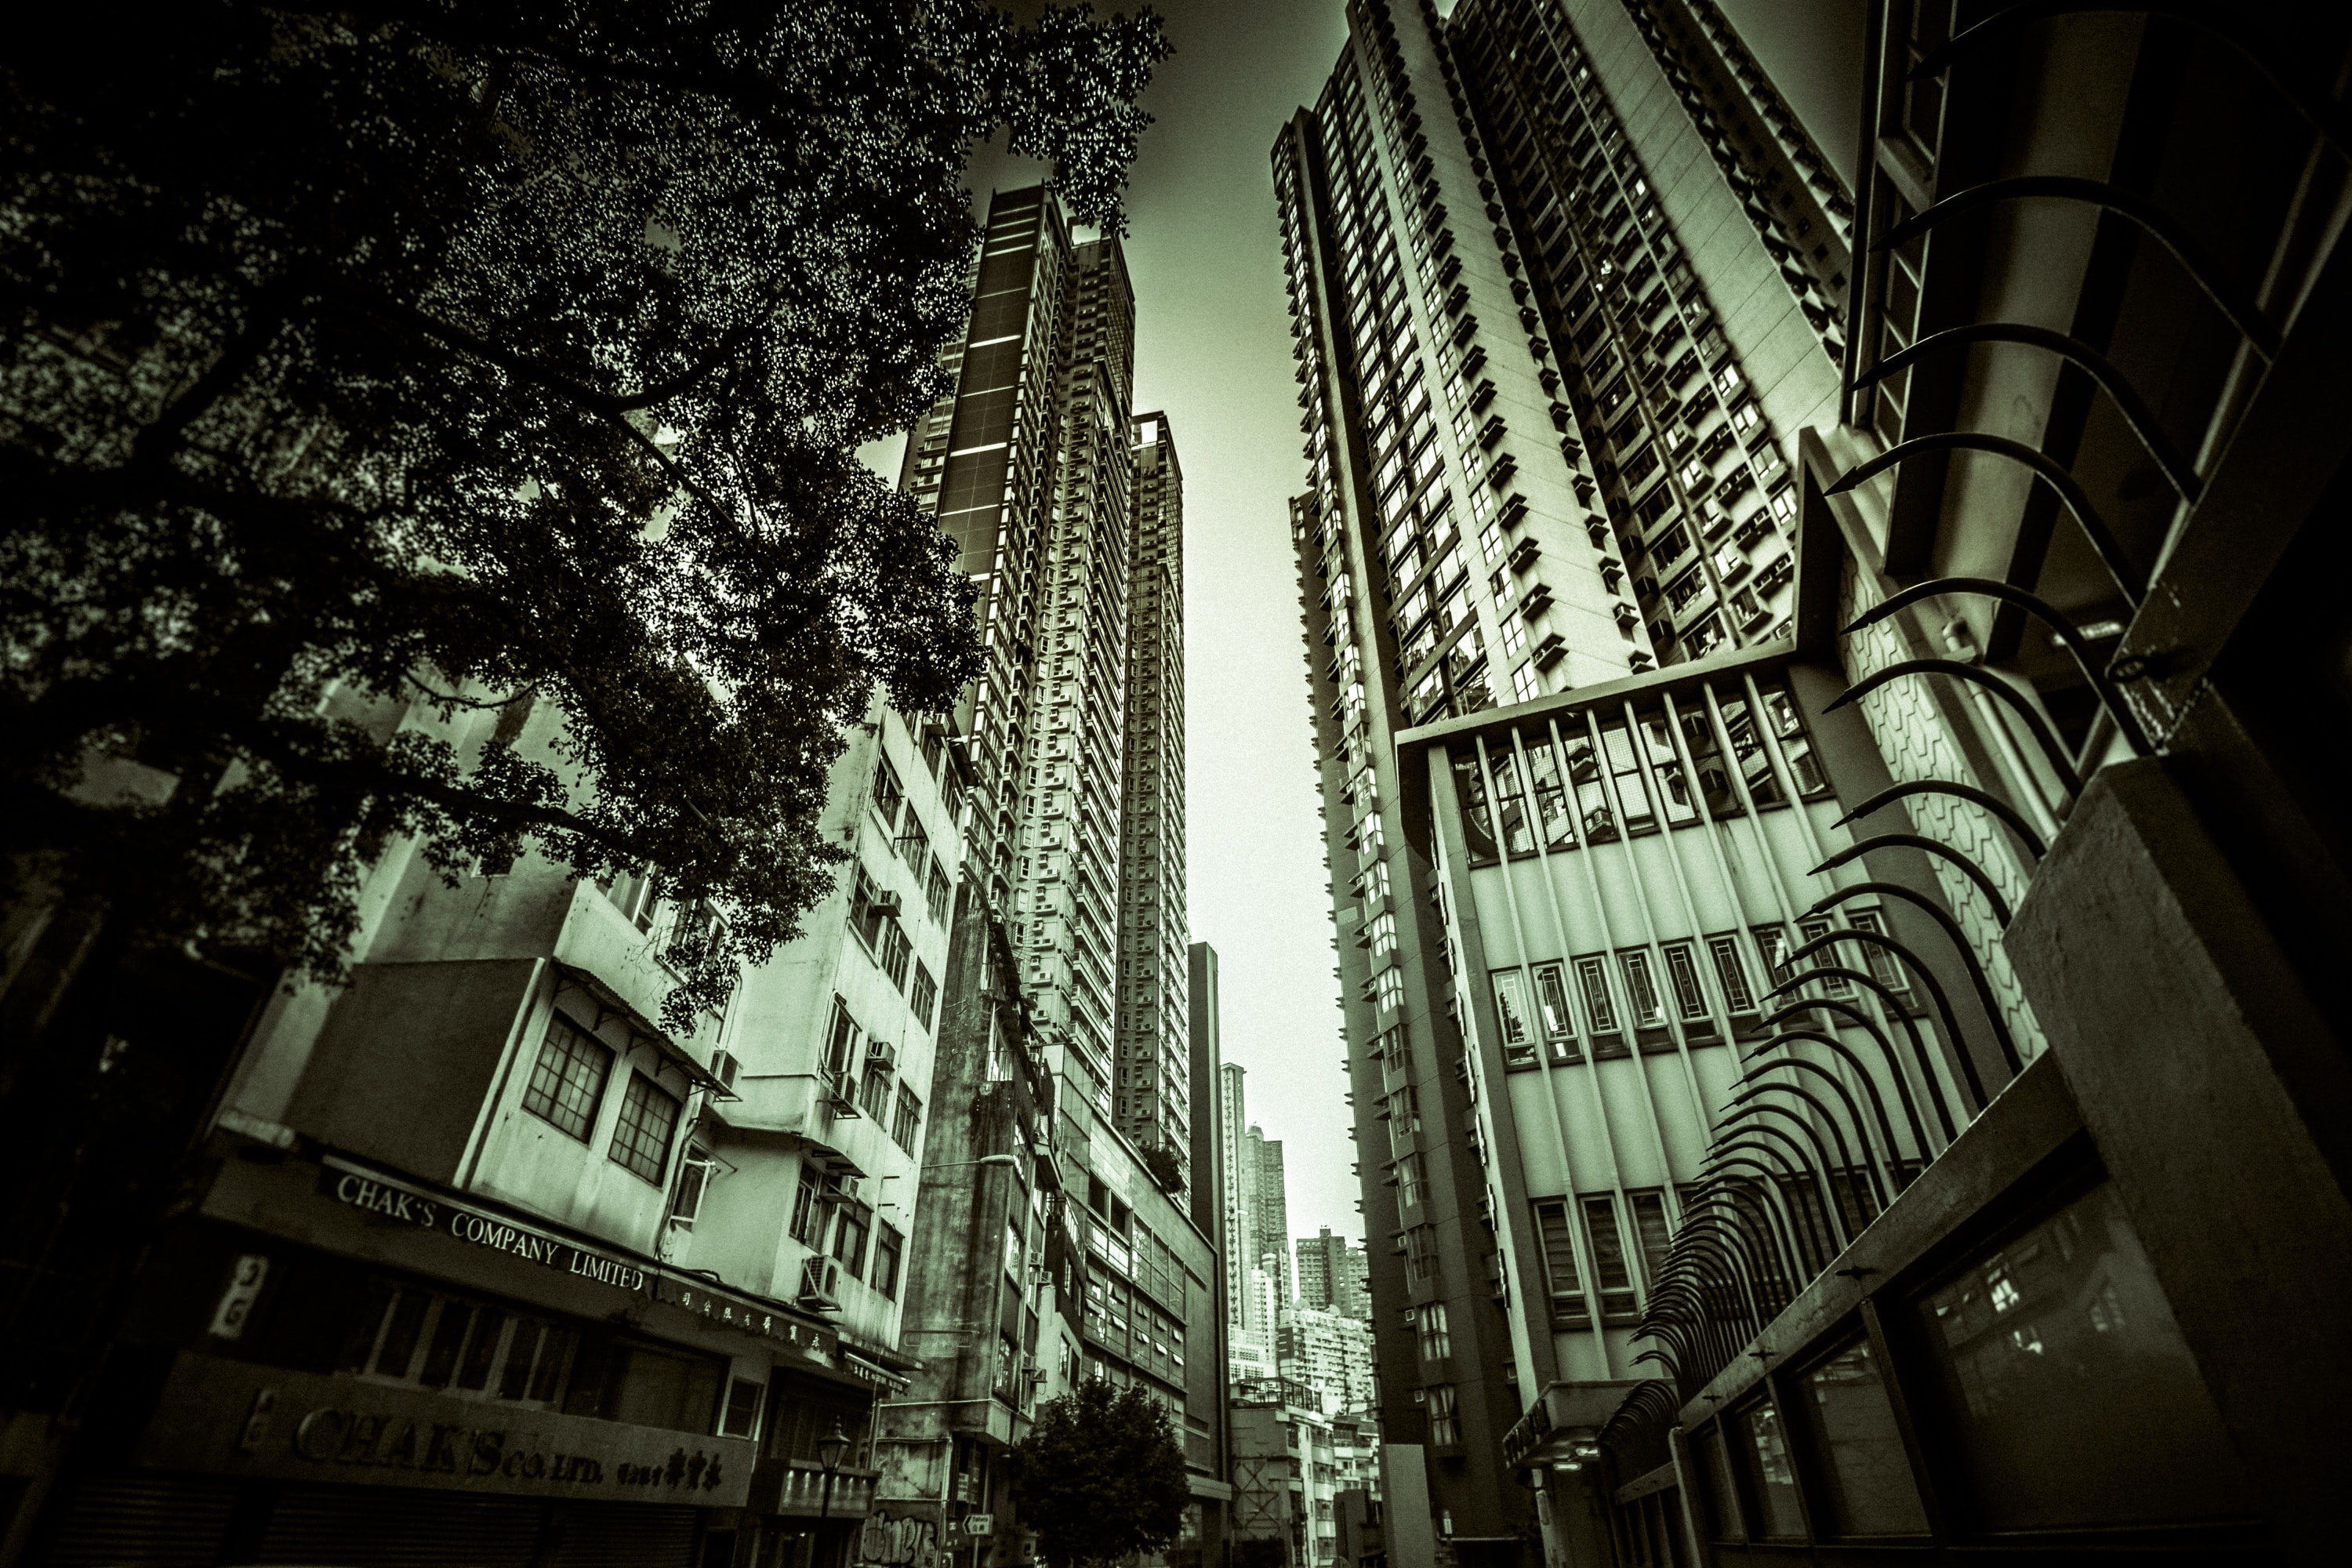 worm's eye view of buildings surrounded with trees